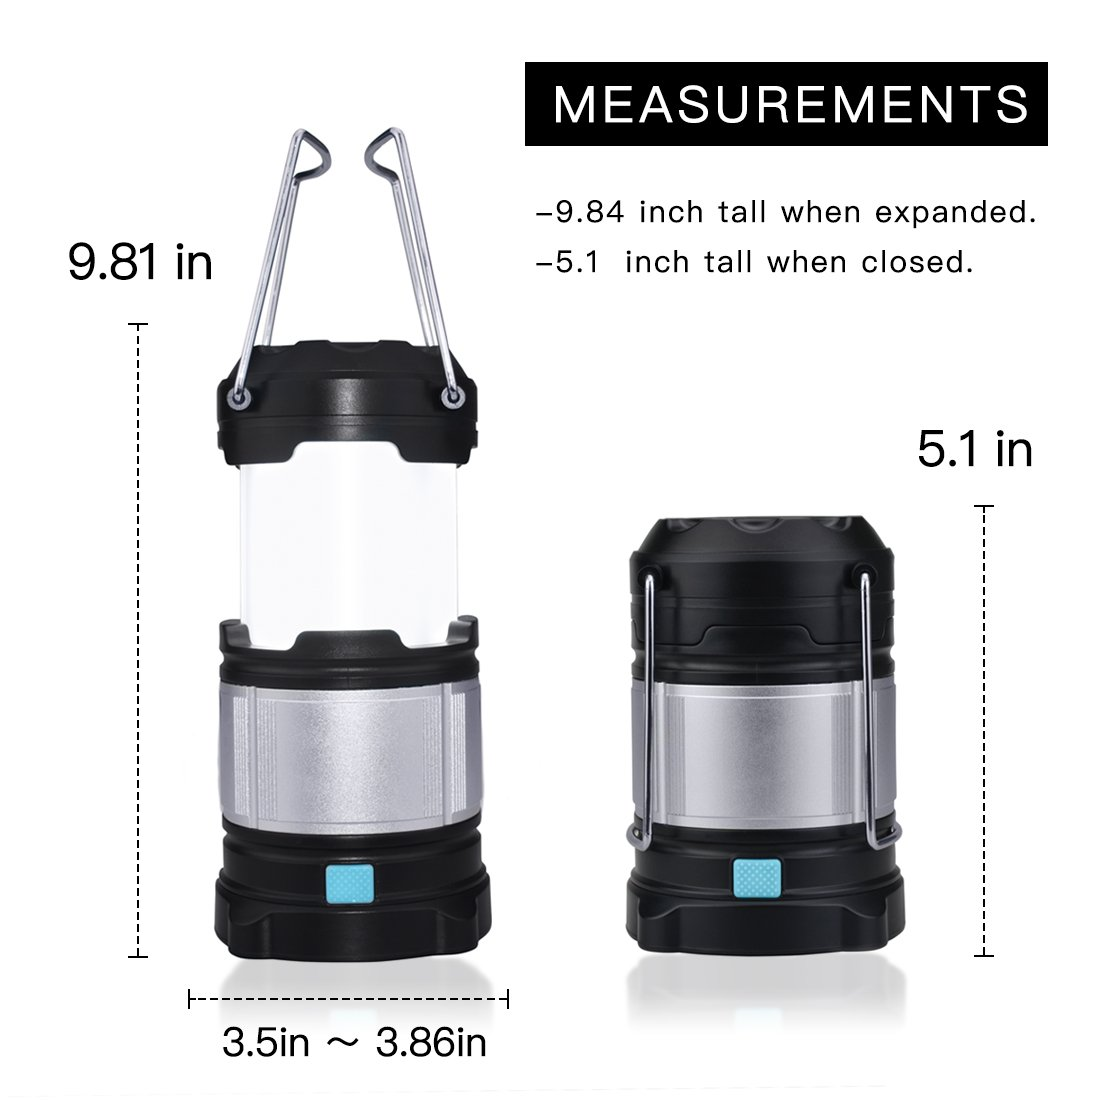 Portable Outdoor LED Camping Lantern Light Rechargeable Battery,Folding Camping Lantern Lamp for Home ,Outdoor, Emergency, Hiking, Fishing and Tent by Flyspin (Image #2)